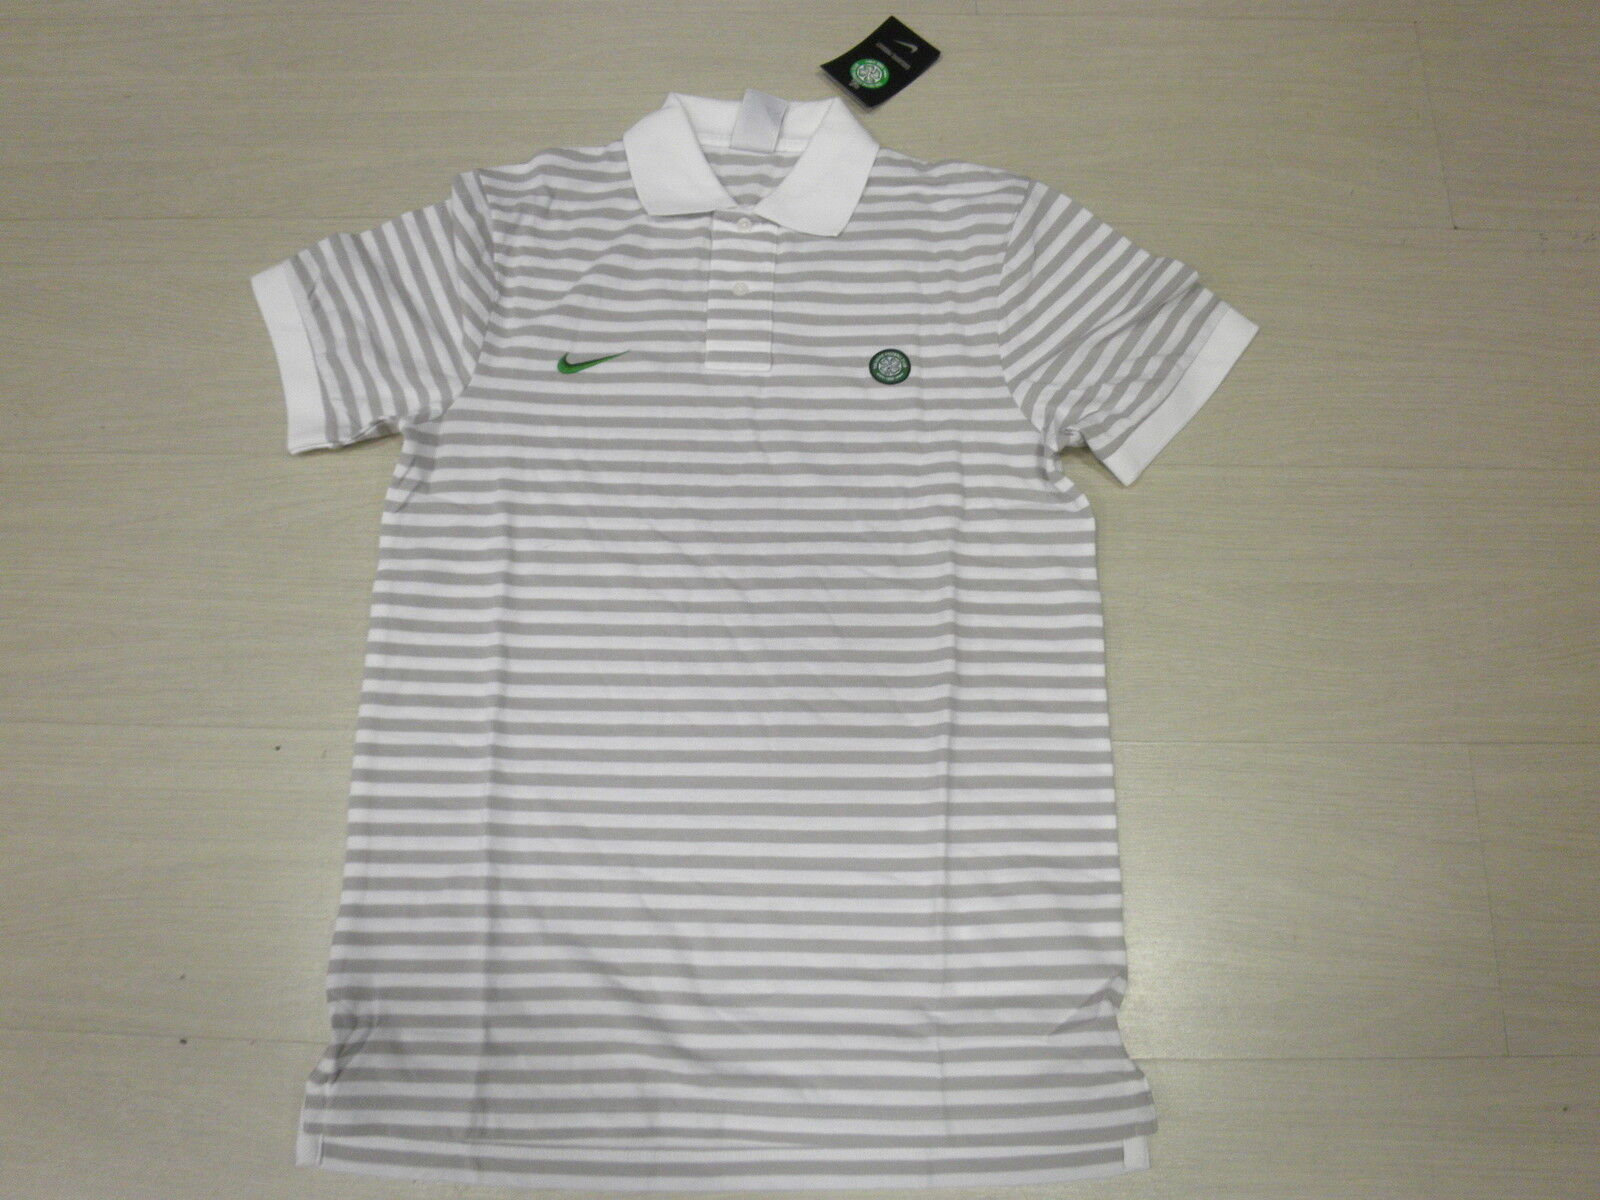 1419 TAGLIA L CELTIC GLASGOW POLO green 2011 RIGHINE COTONE